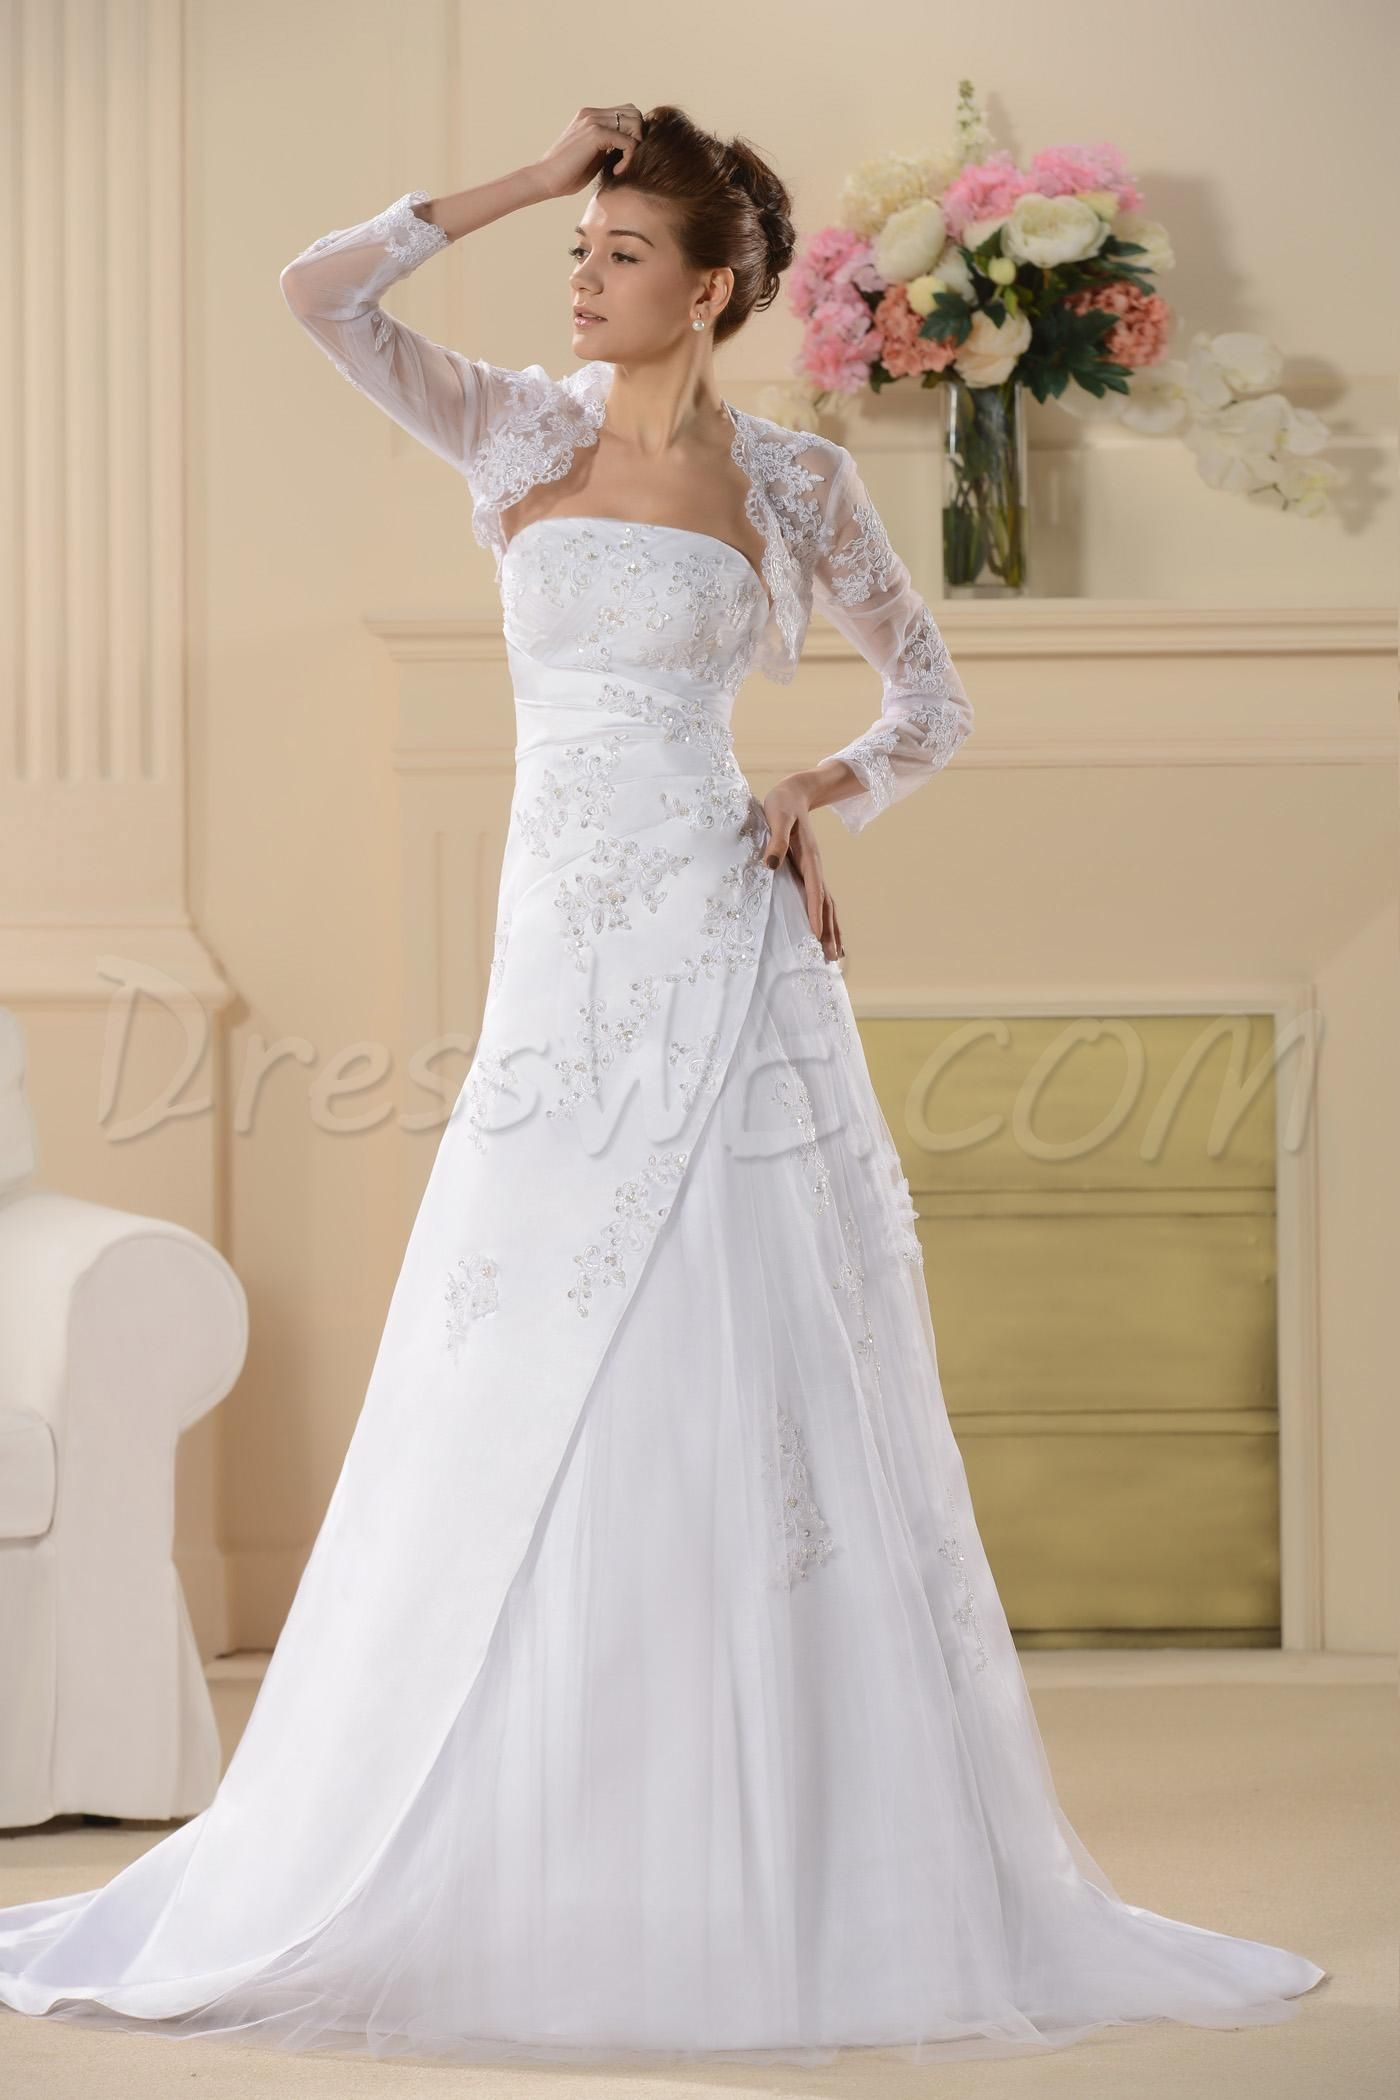 Wedding renewal dresses for beach  Wedding dress features beaded chantilly lace appliques across bodice